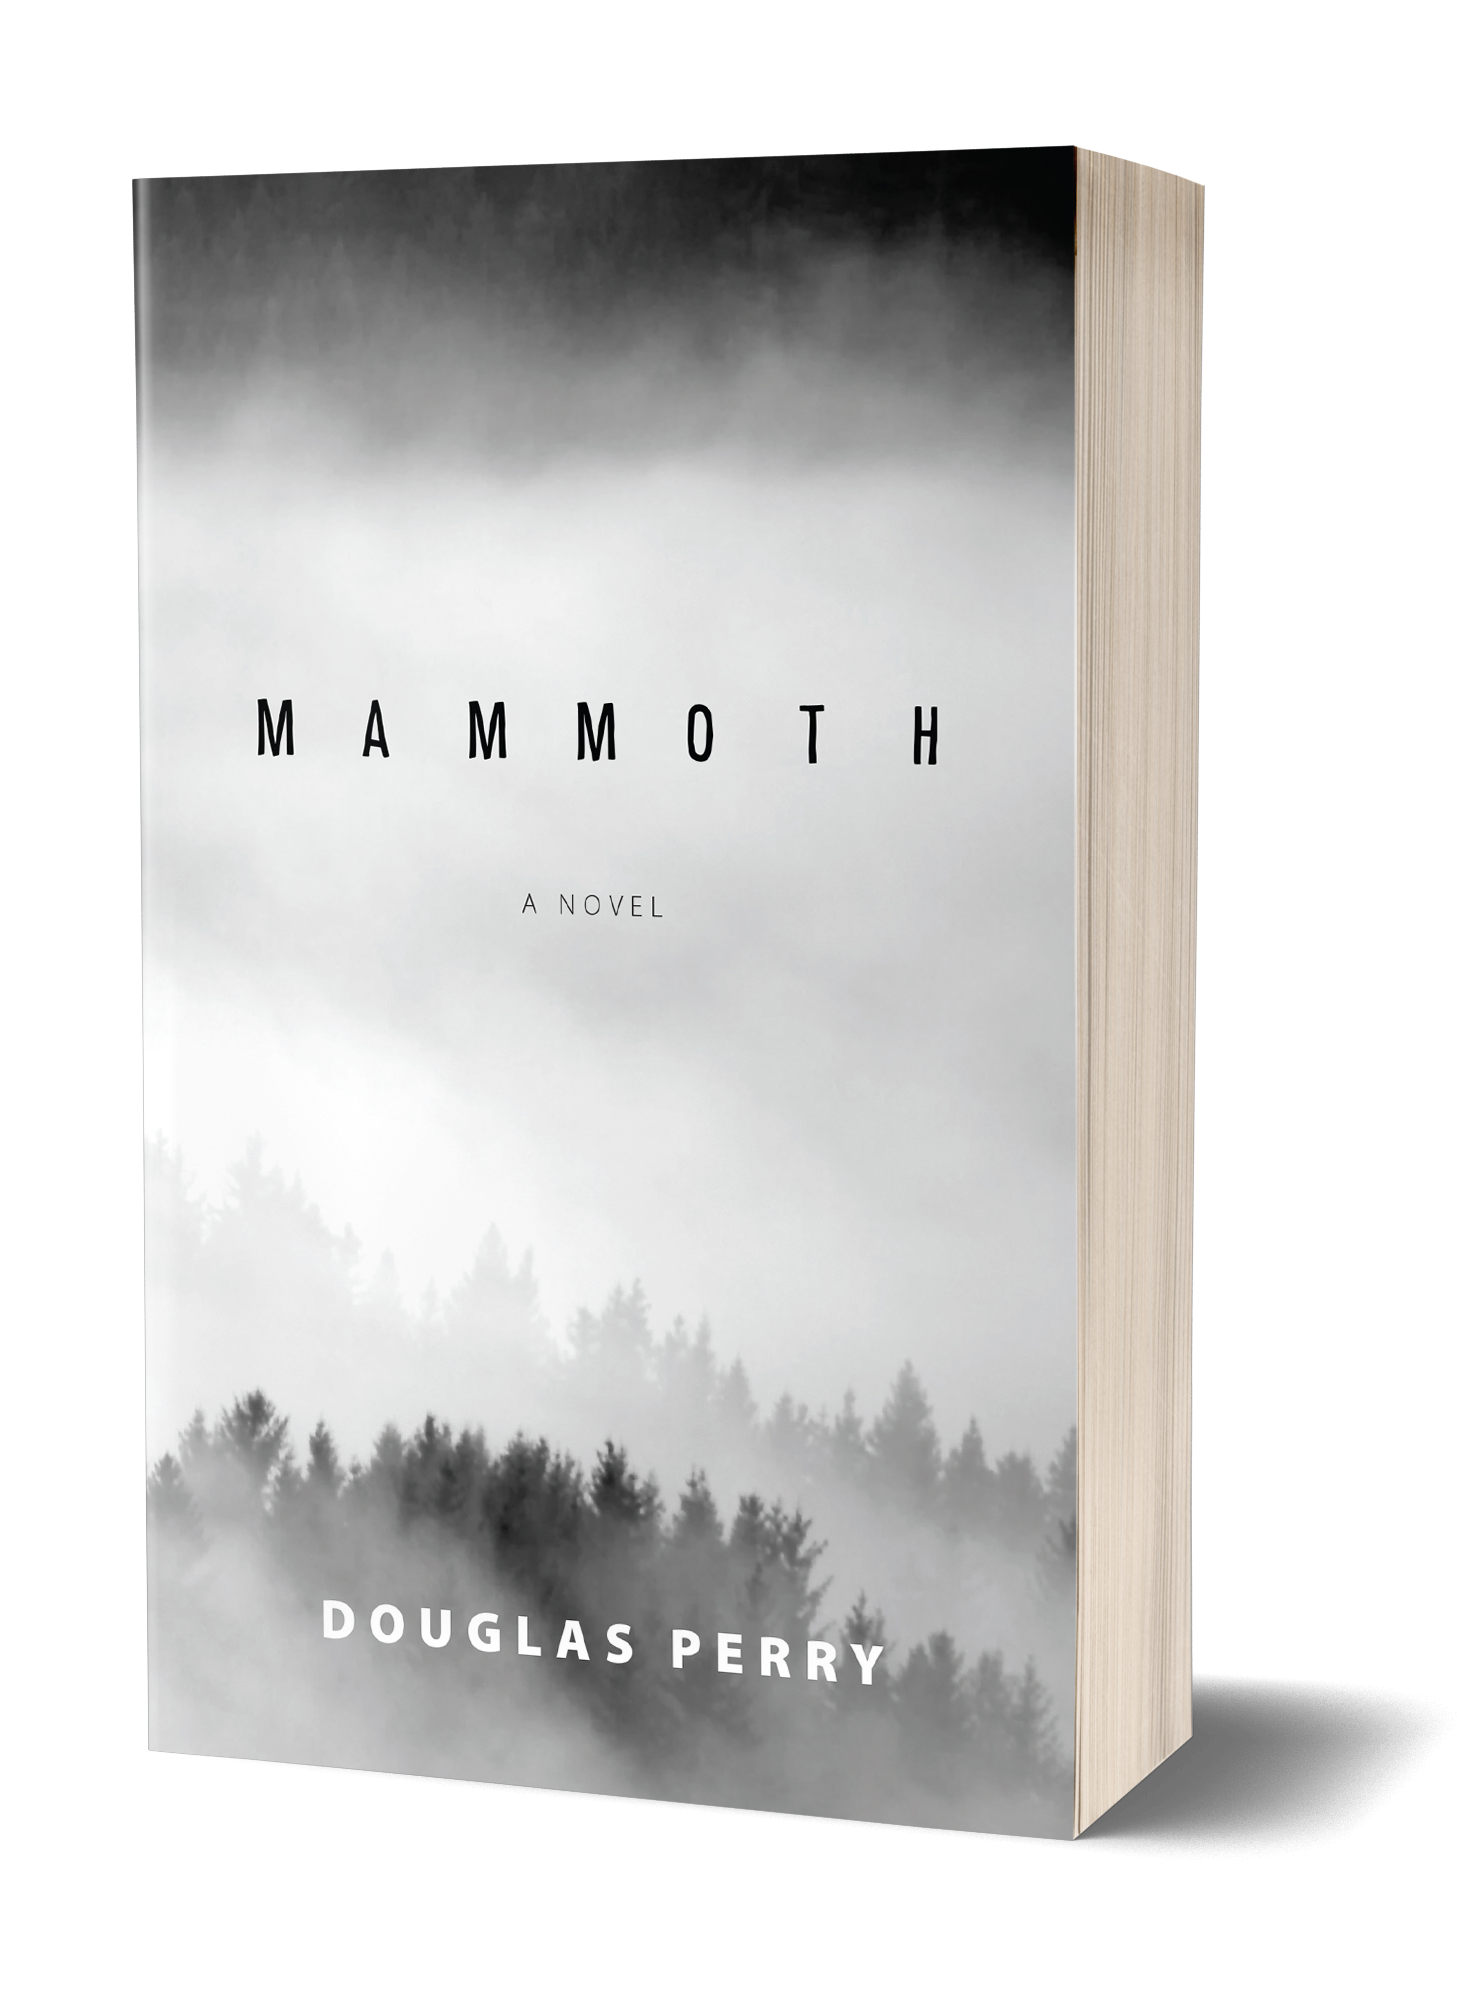 Mammoth book cover, trees shrouded in mist and fog